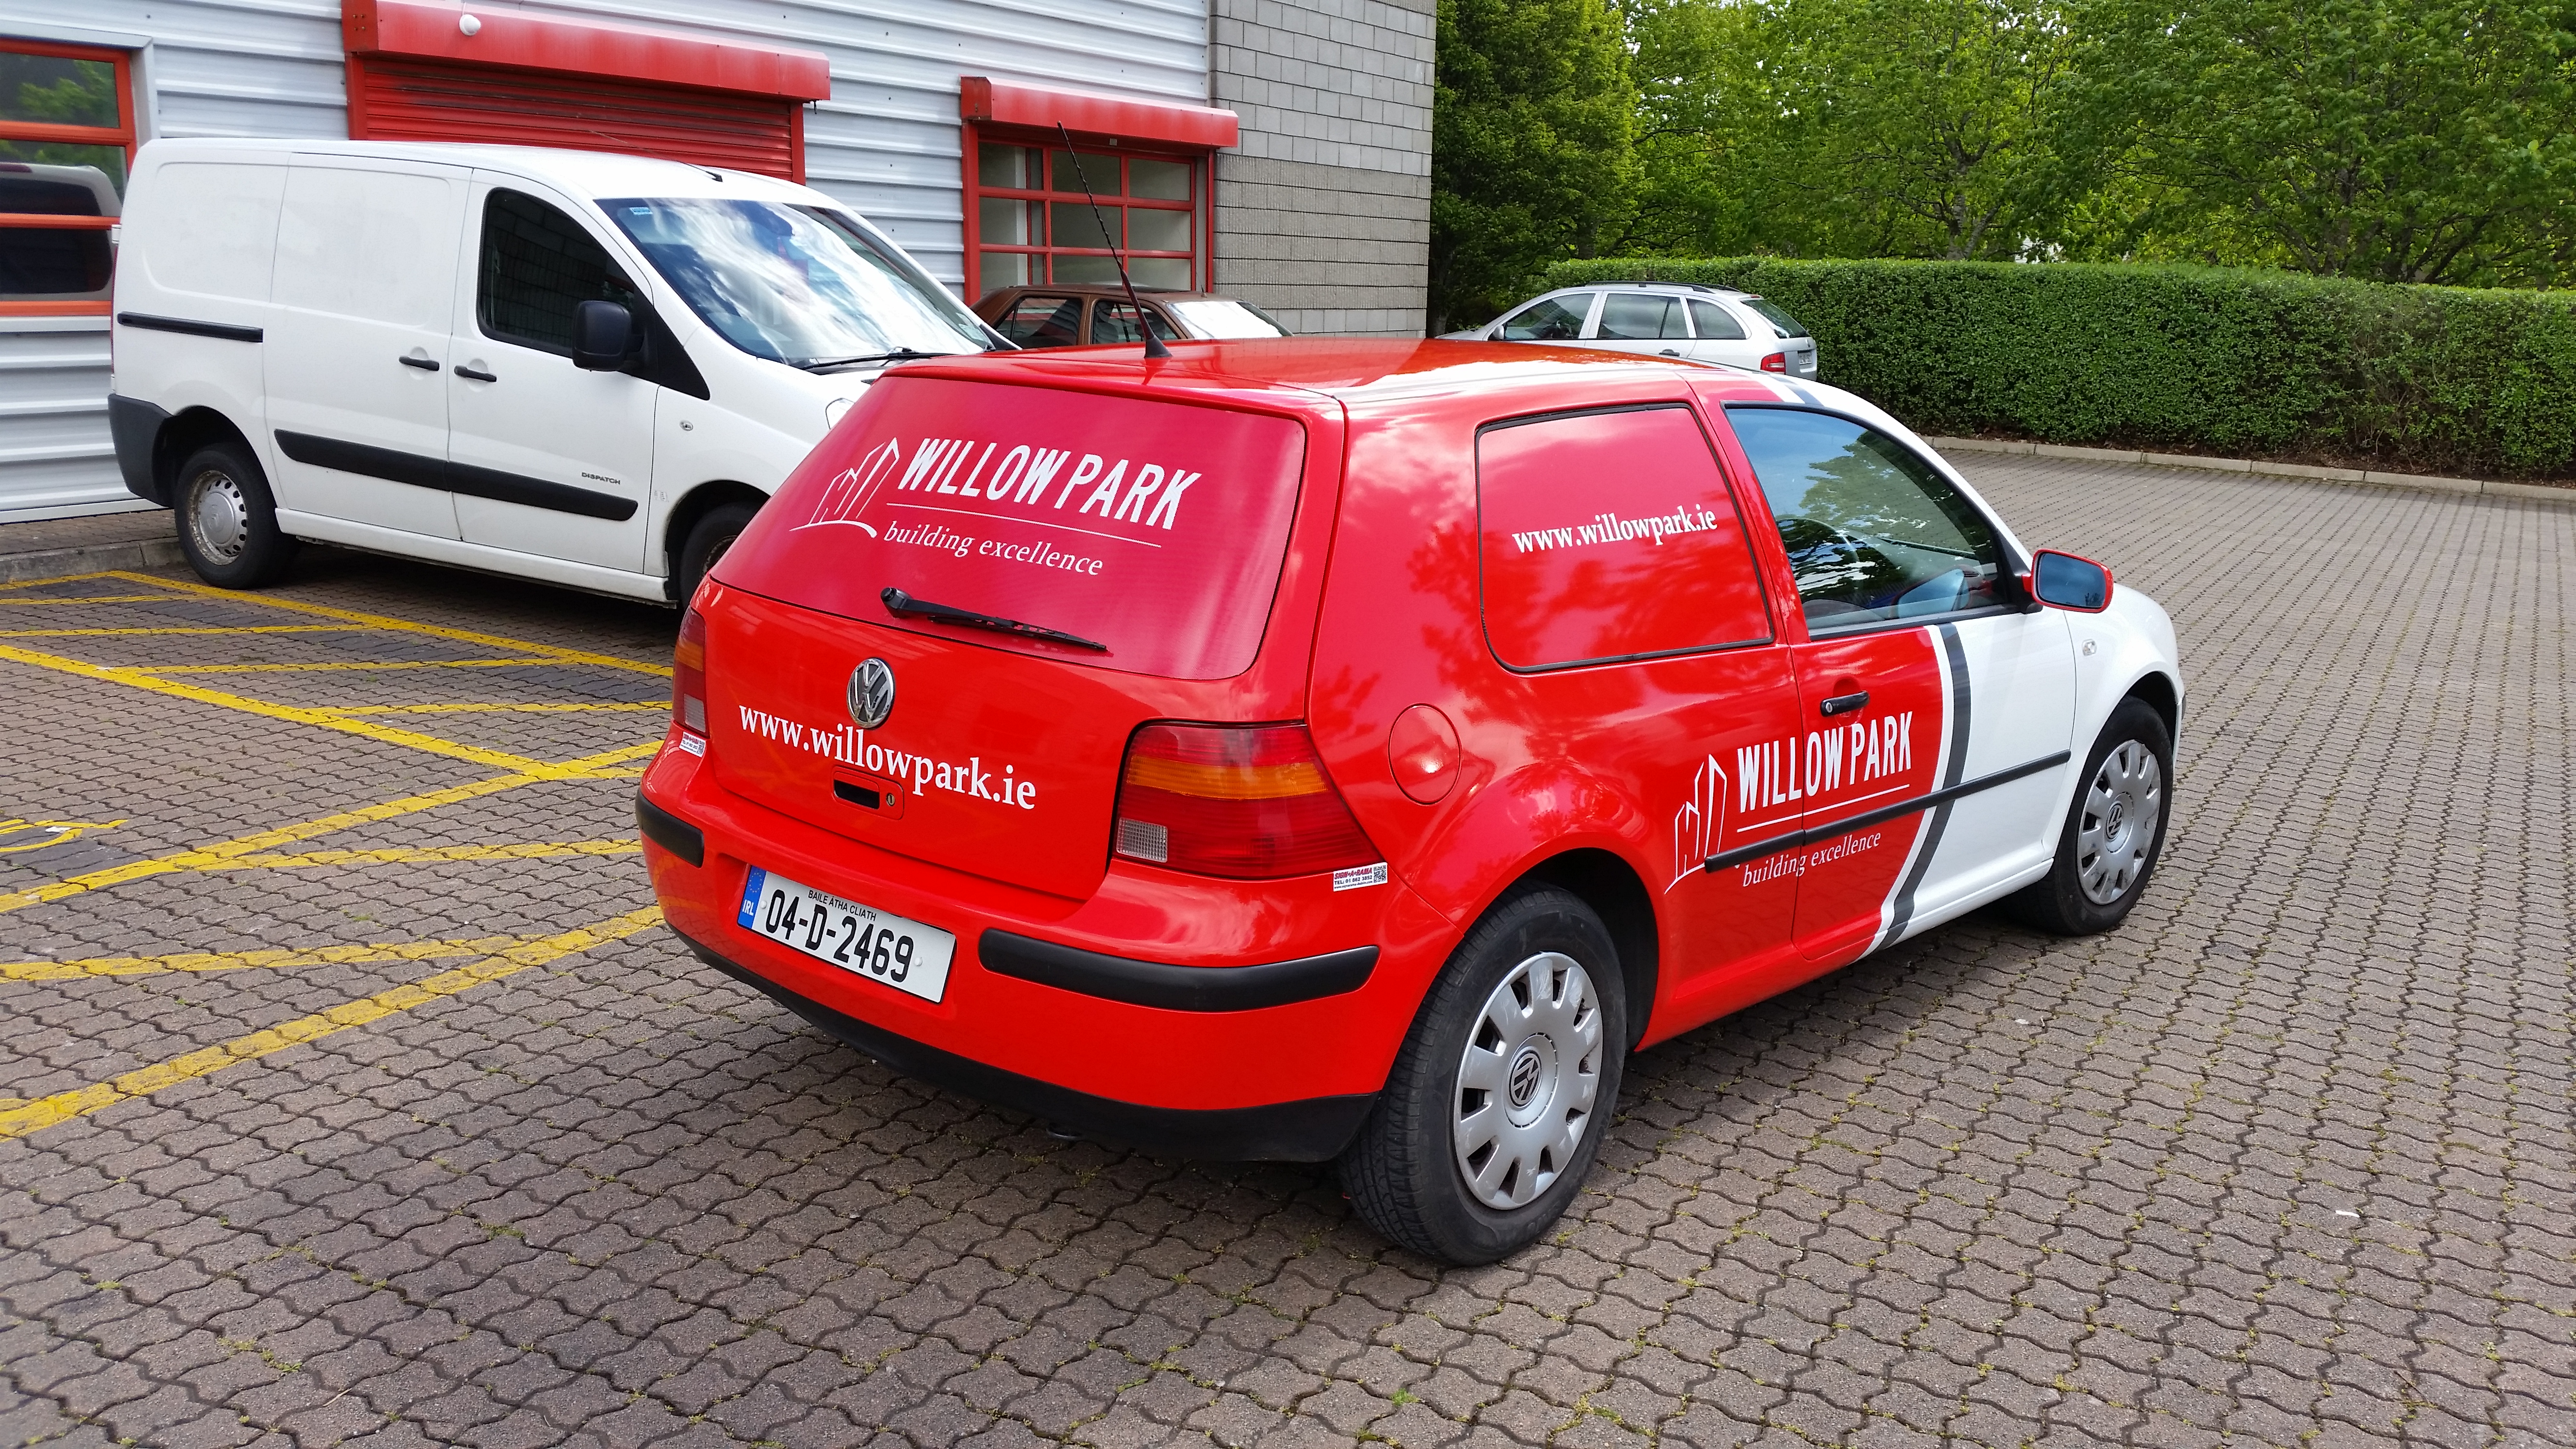 Vehicle Partial Wrap with Red Cast Vinyl Graphics onto White Vehicle